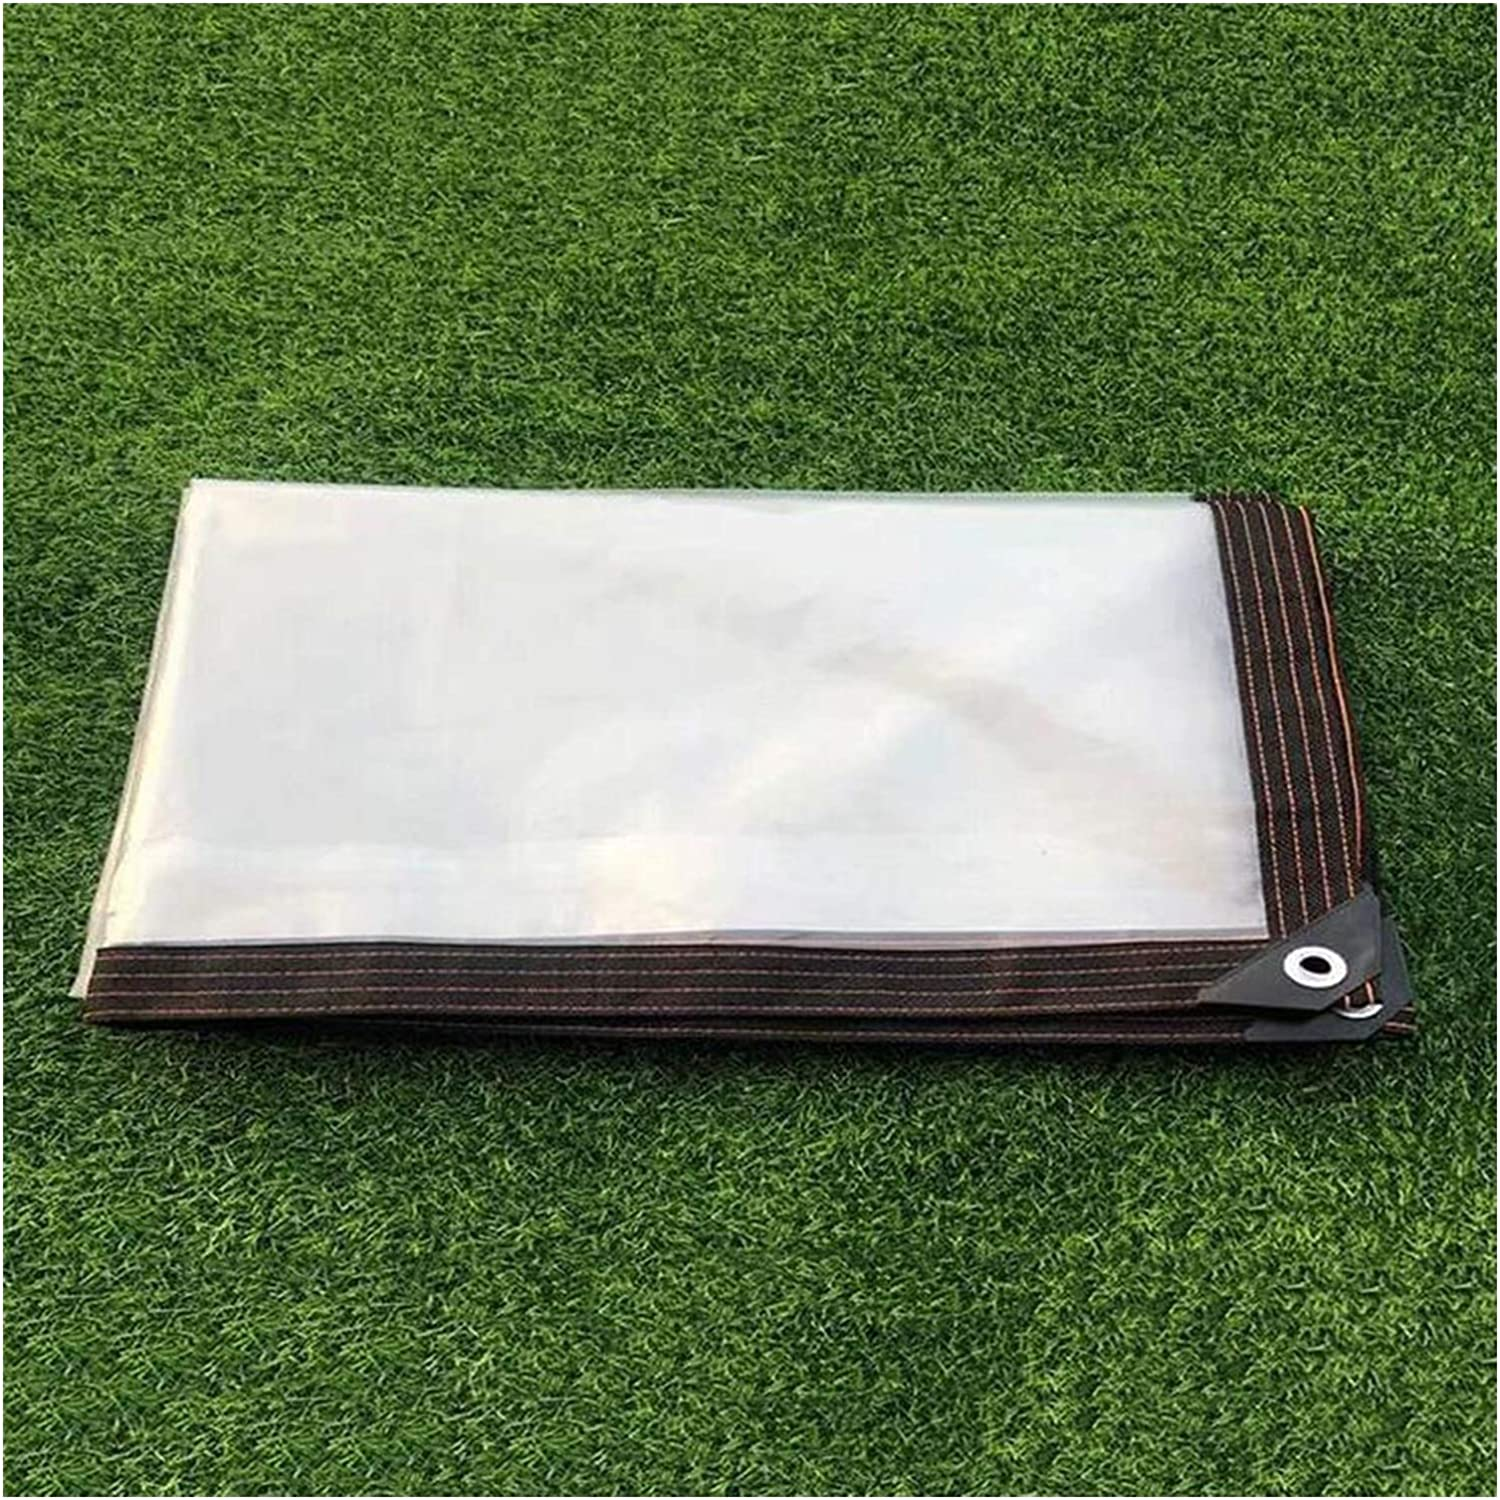 KUYUC Tarp Transparent for Greenhouse Gifts Poly Waterproof Directly managed store Tarpaulin